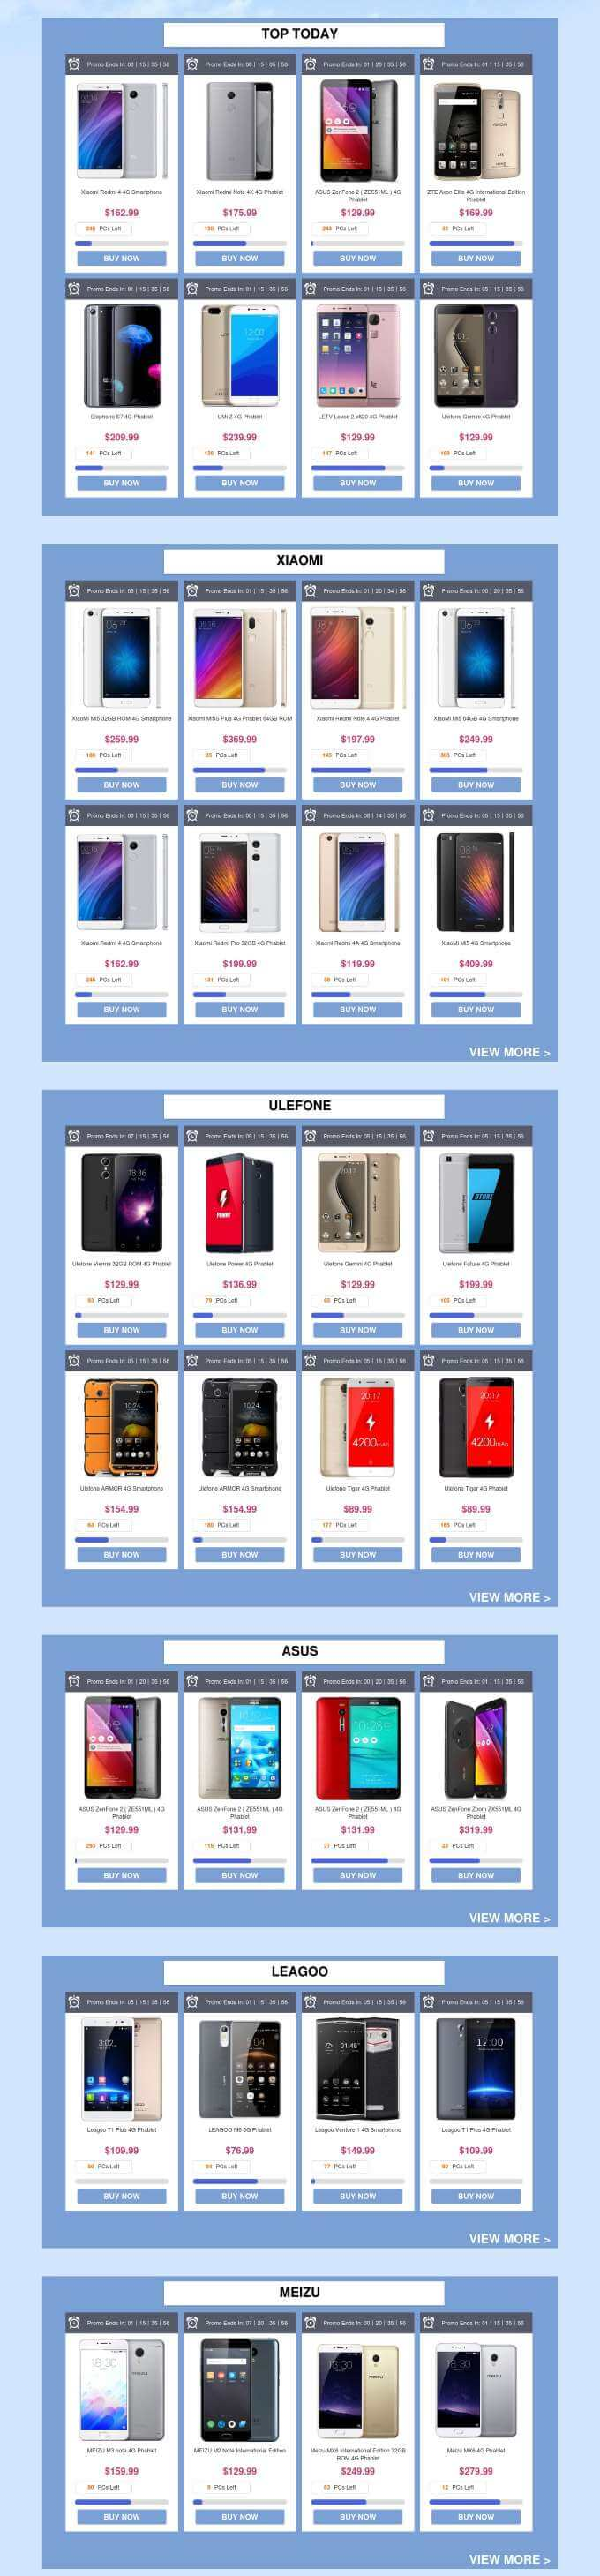 Top Today prodotti 3° compleanno Gearbest